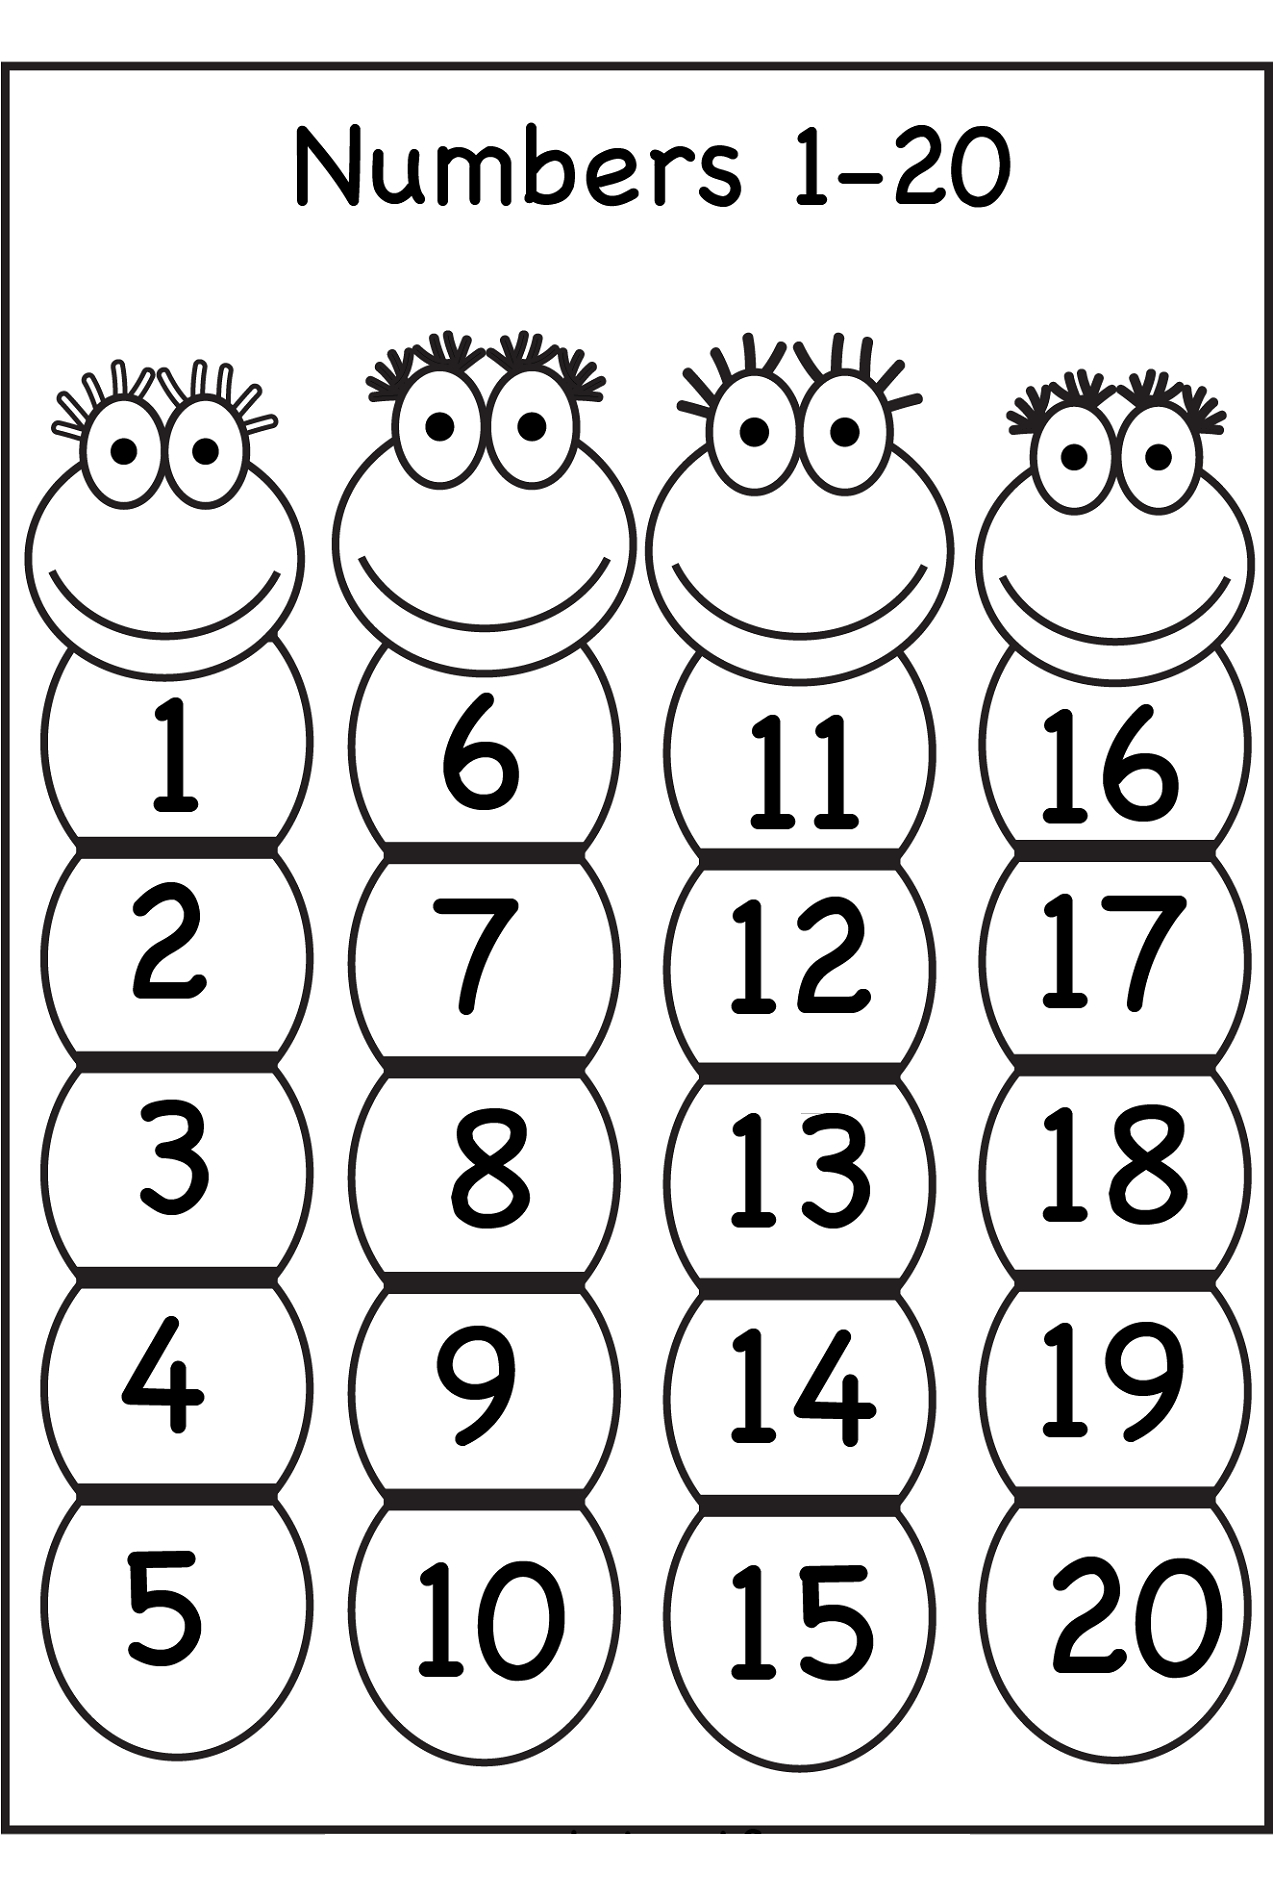 Trace Number 1-20 Worksheets | Activity Shelter | Free Printable Tracing Numbers 1 20 Worksheets